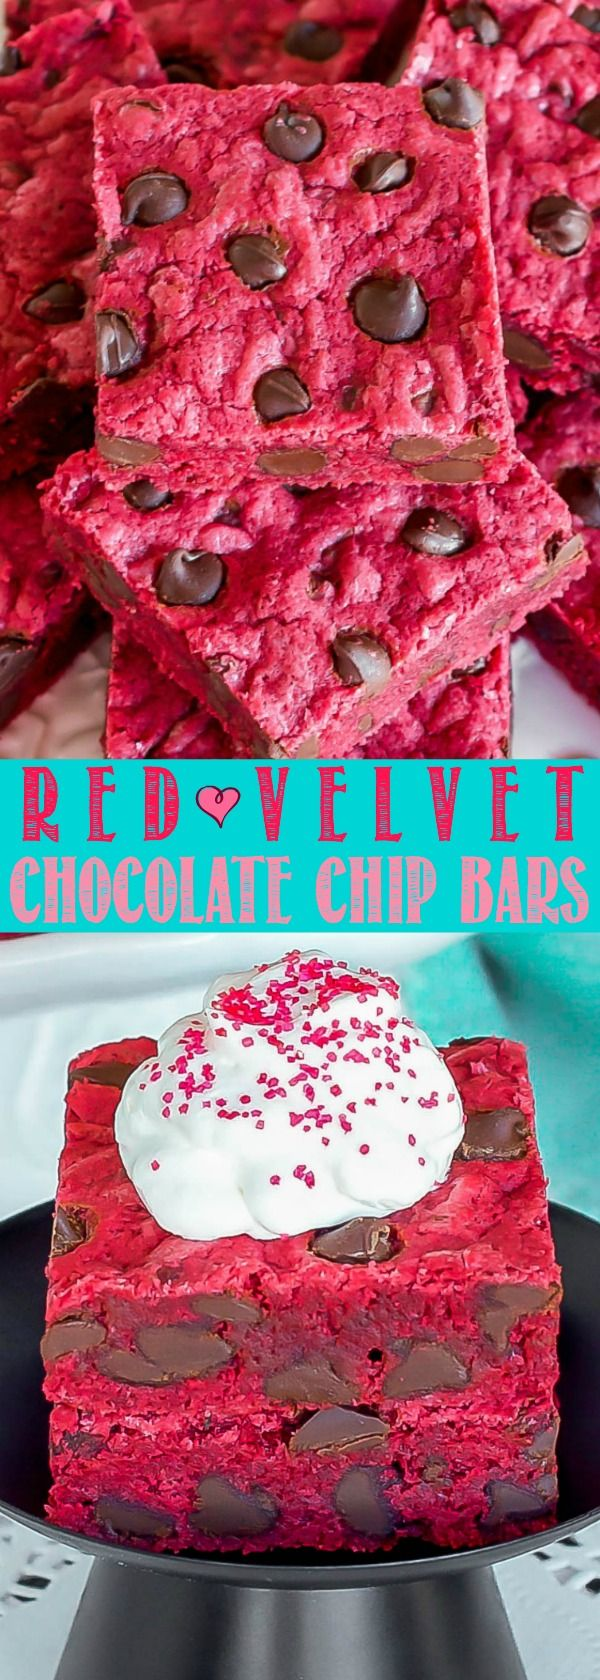 Red Velvet Chocolate Chip Bars are soft, chewy and loaded with chocolate! The perfect no-fuss dessert for Valentines Day, a birthday party, or just because!